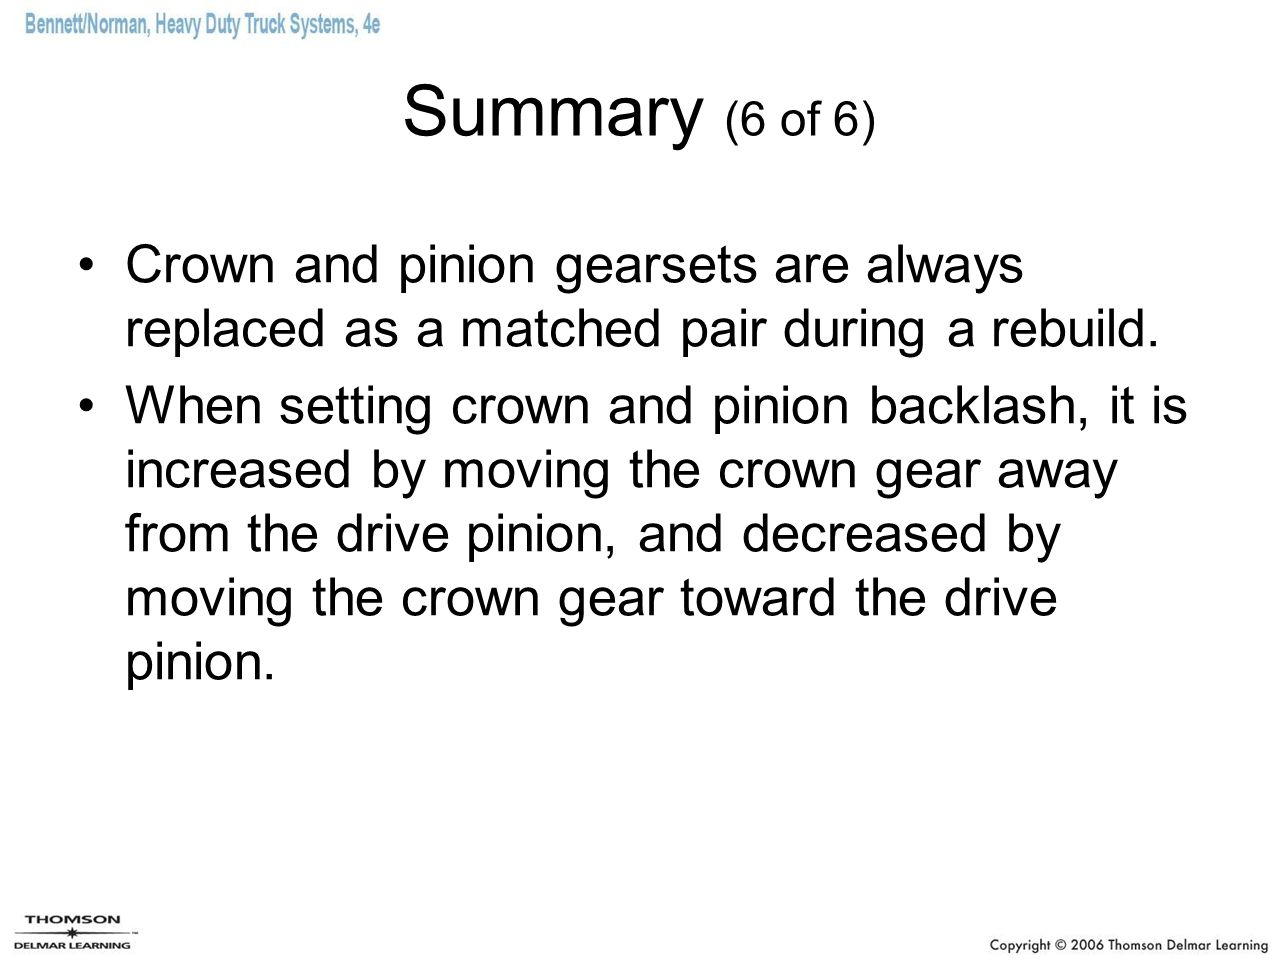 Summary (6 of 6) Crown and pinion gearsets are always replaced as a matched pair during a rebuild.